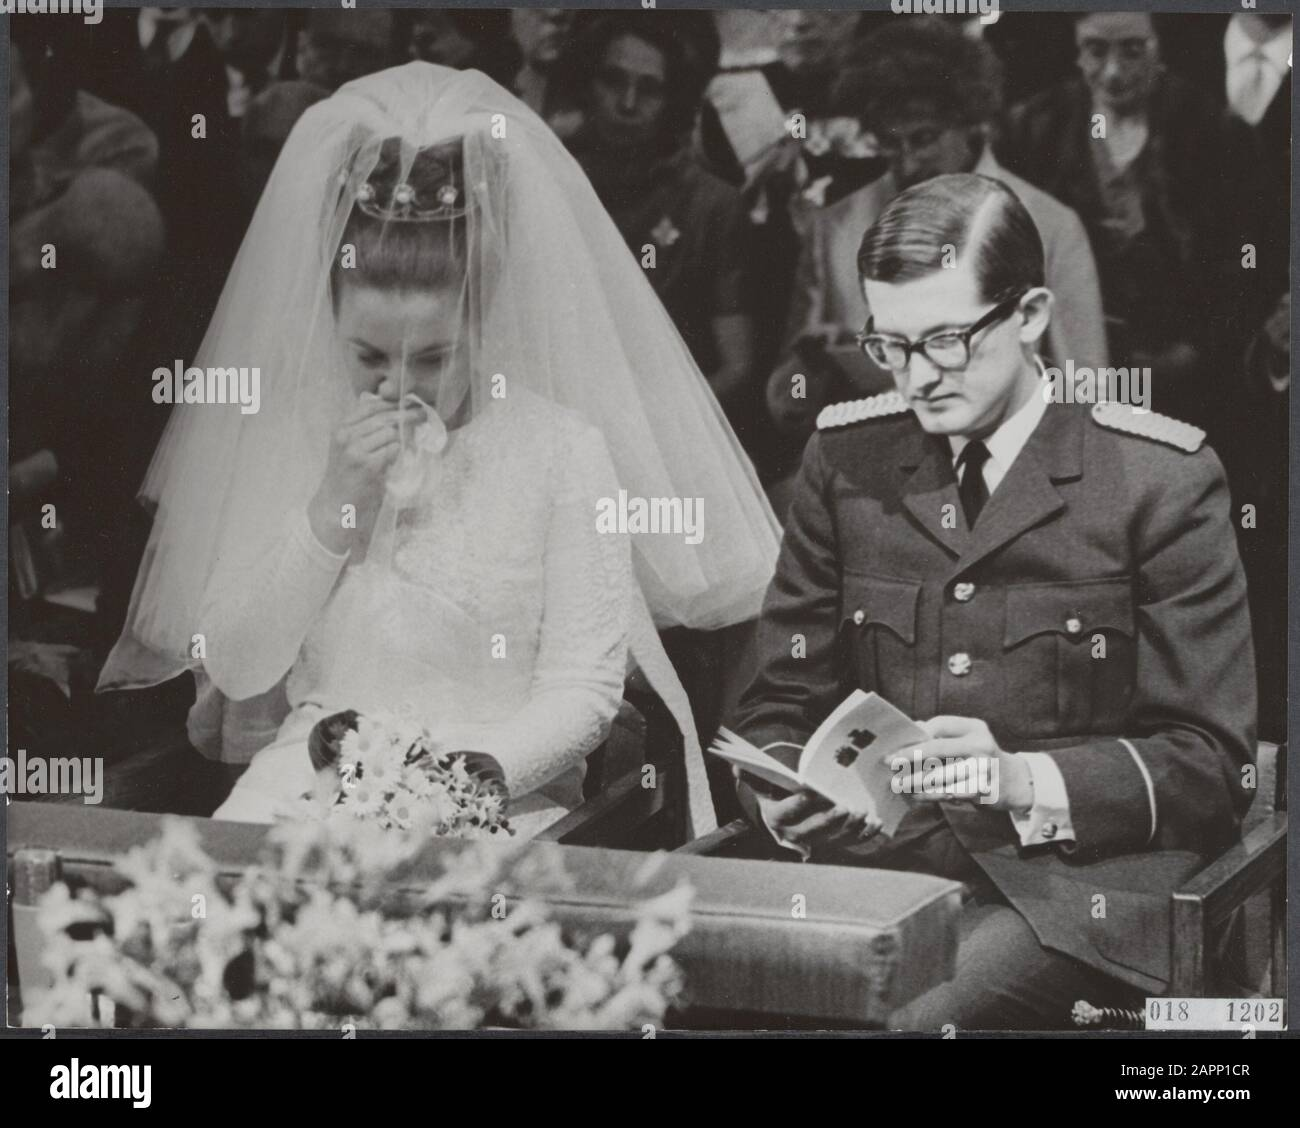 Marriage princess Margriet. Princess Margriet was too powerful during the ceremony in the Jacobskerk in The Hague Date: 10 January 1967 Location: The Hague, Zuid-Holland Keywords: marriages, churches, royal house, princesses, town halls Personal name: Margriet, princess, Vollenhoven, Pieter van Stock Photo